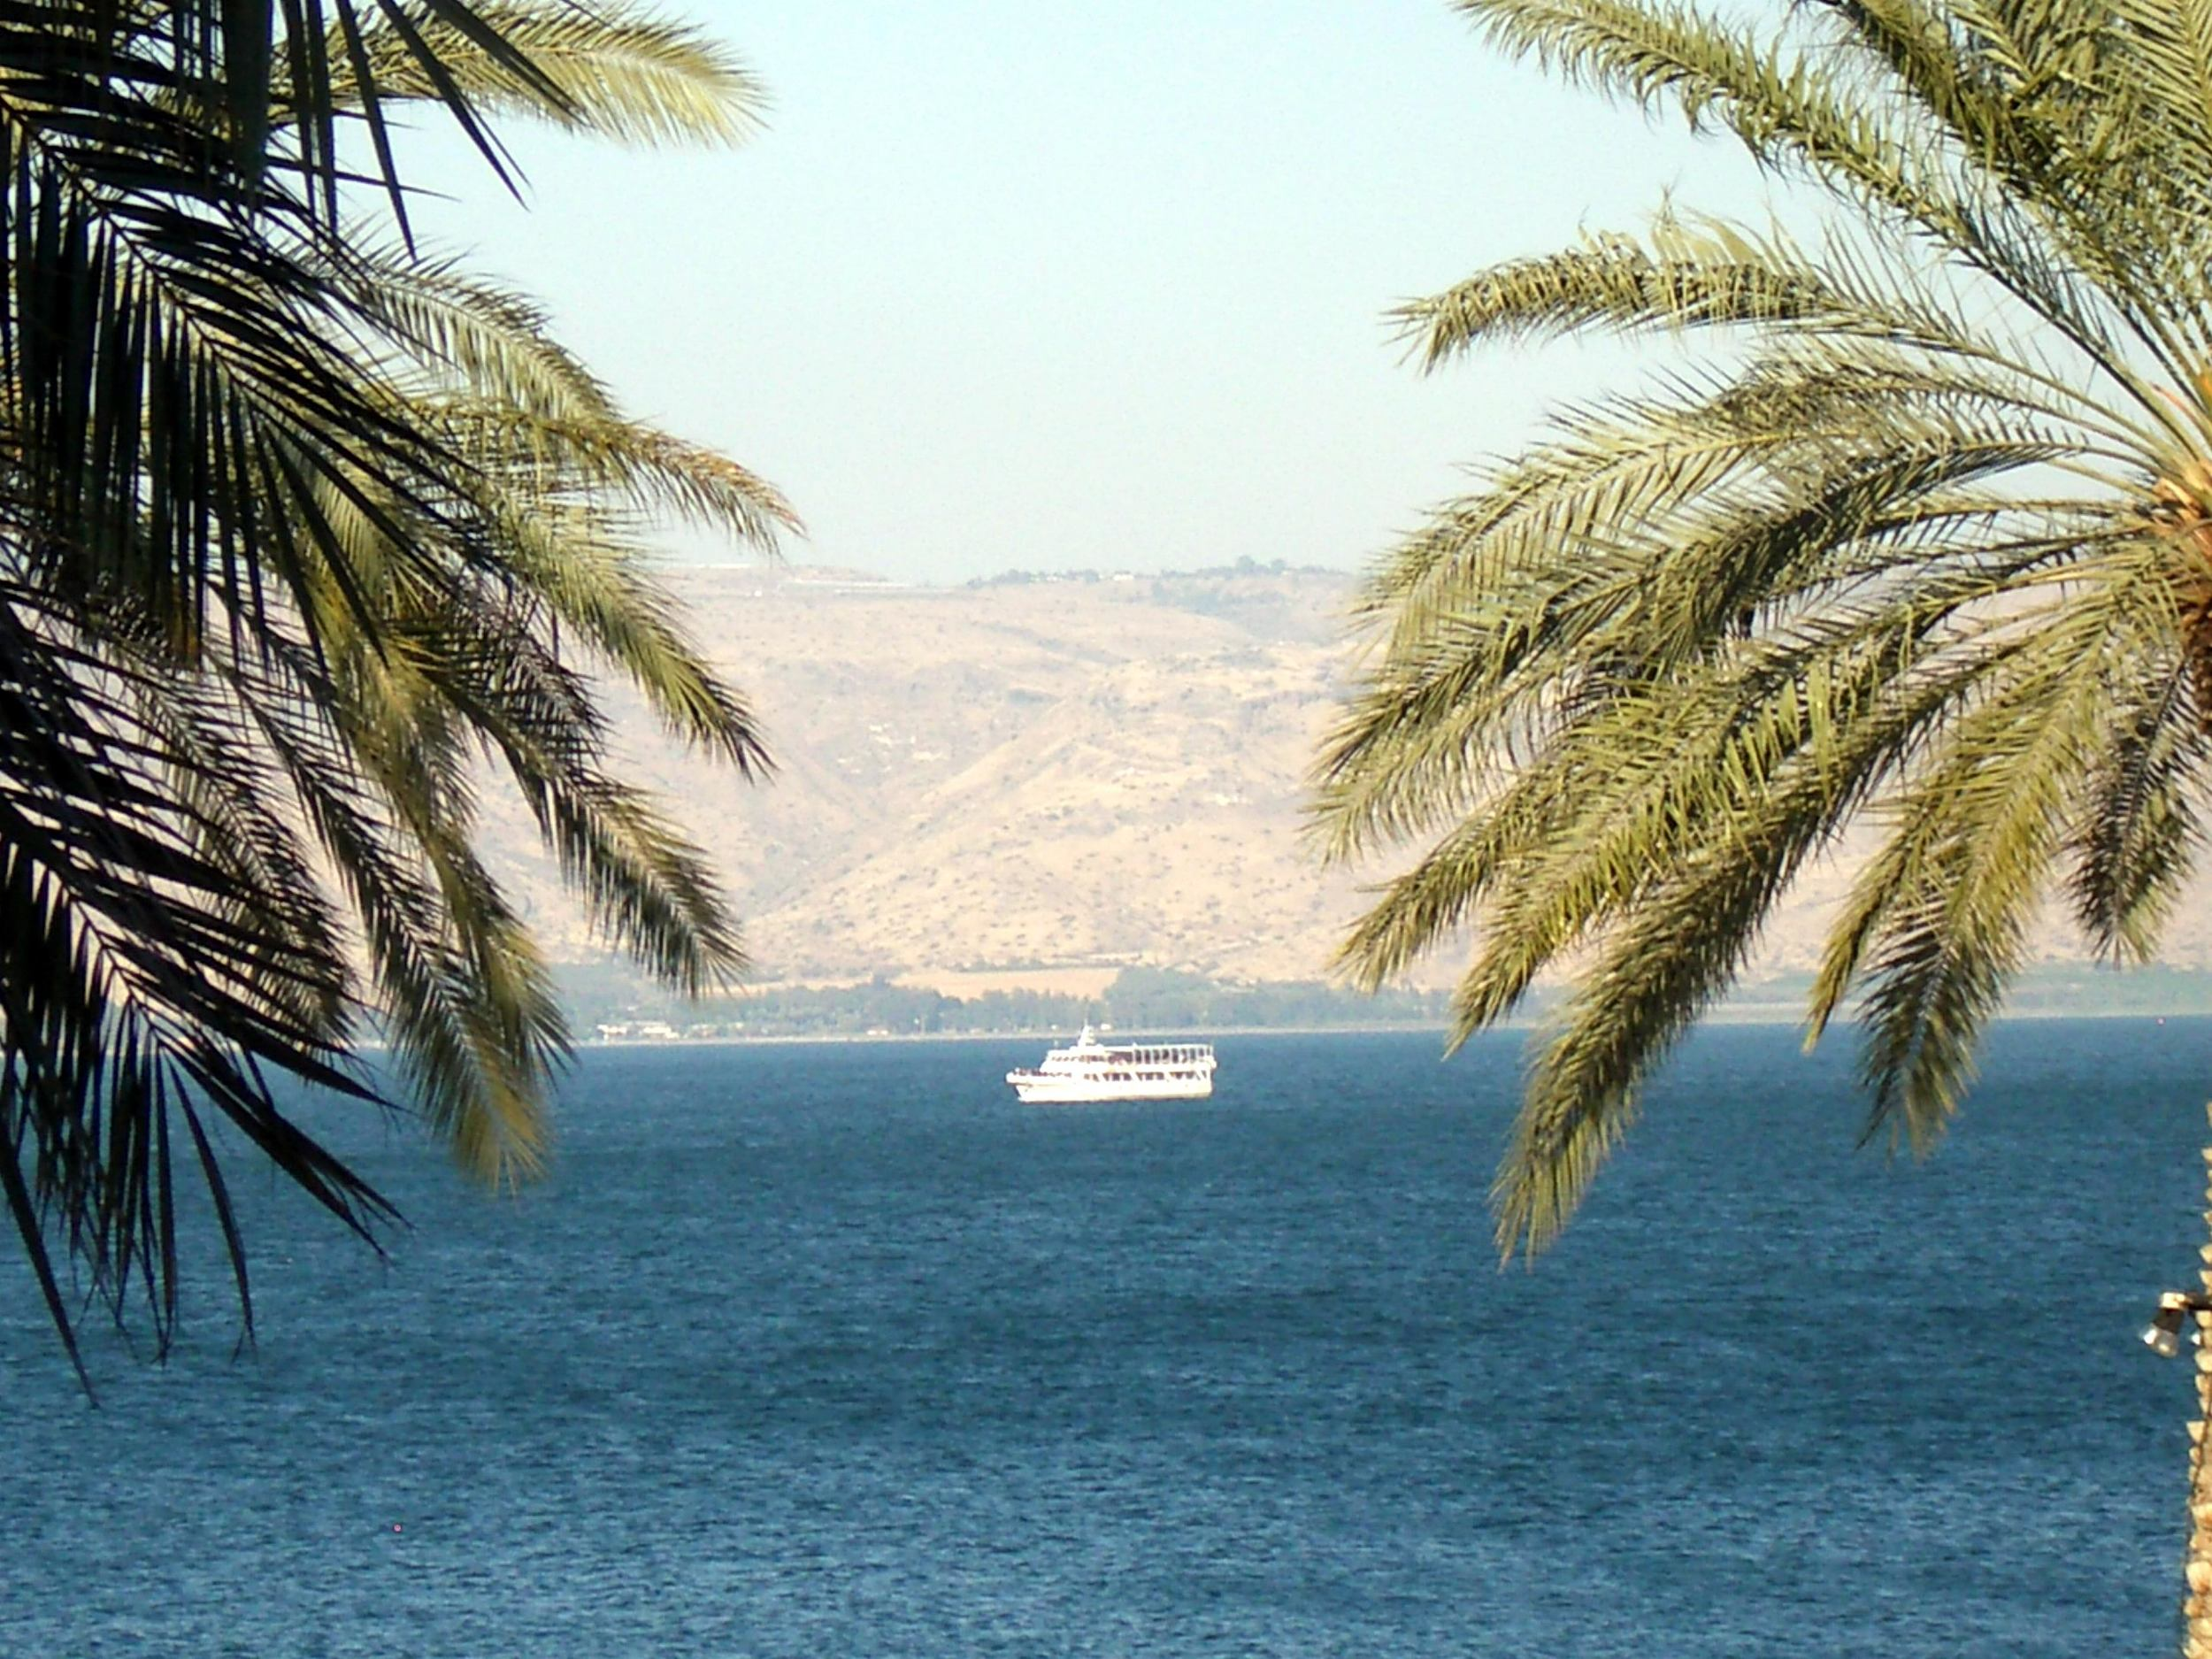 IMGP3037 Sea of Galilee - Copy.JPG